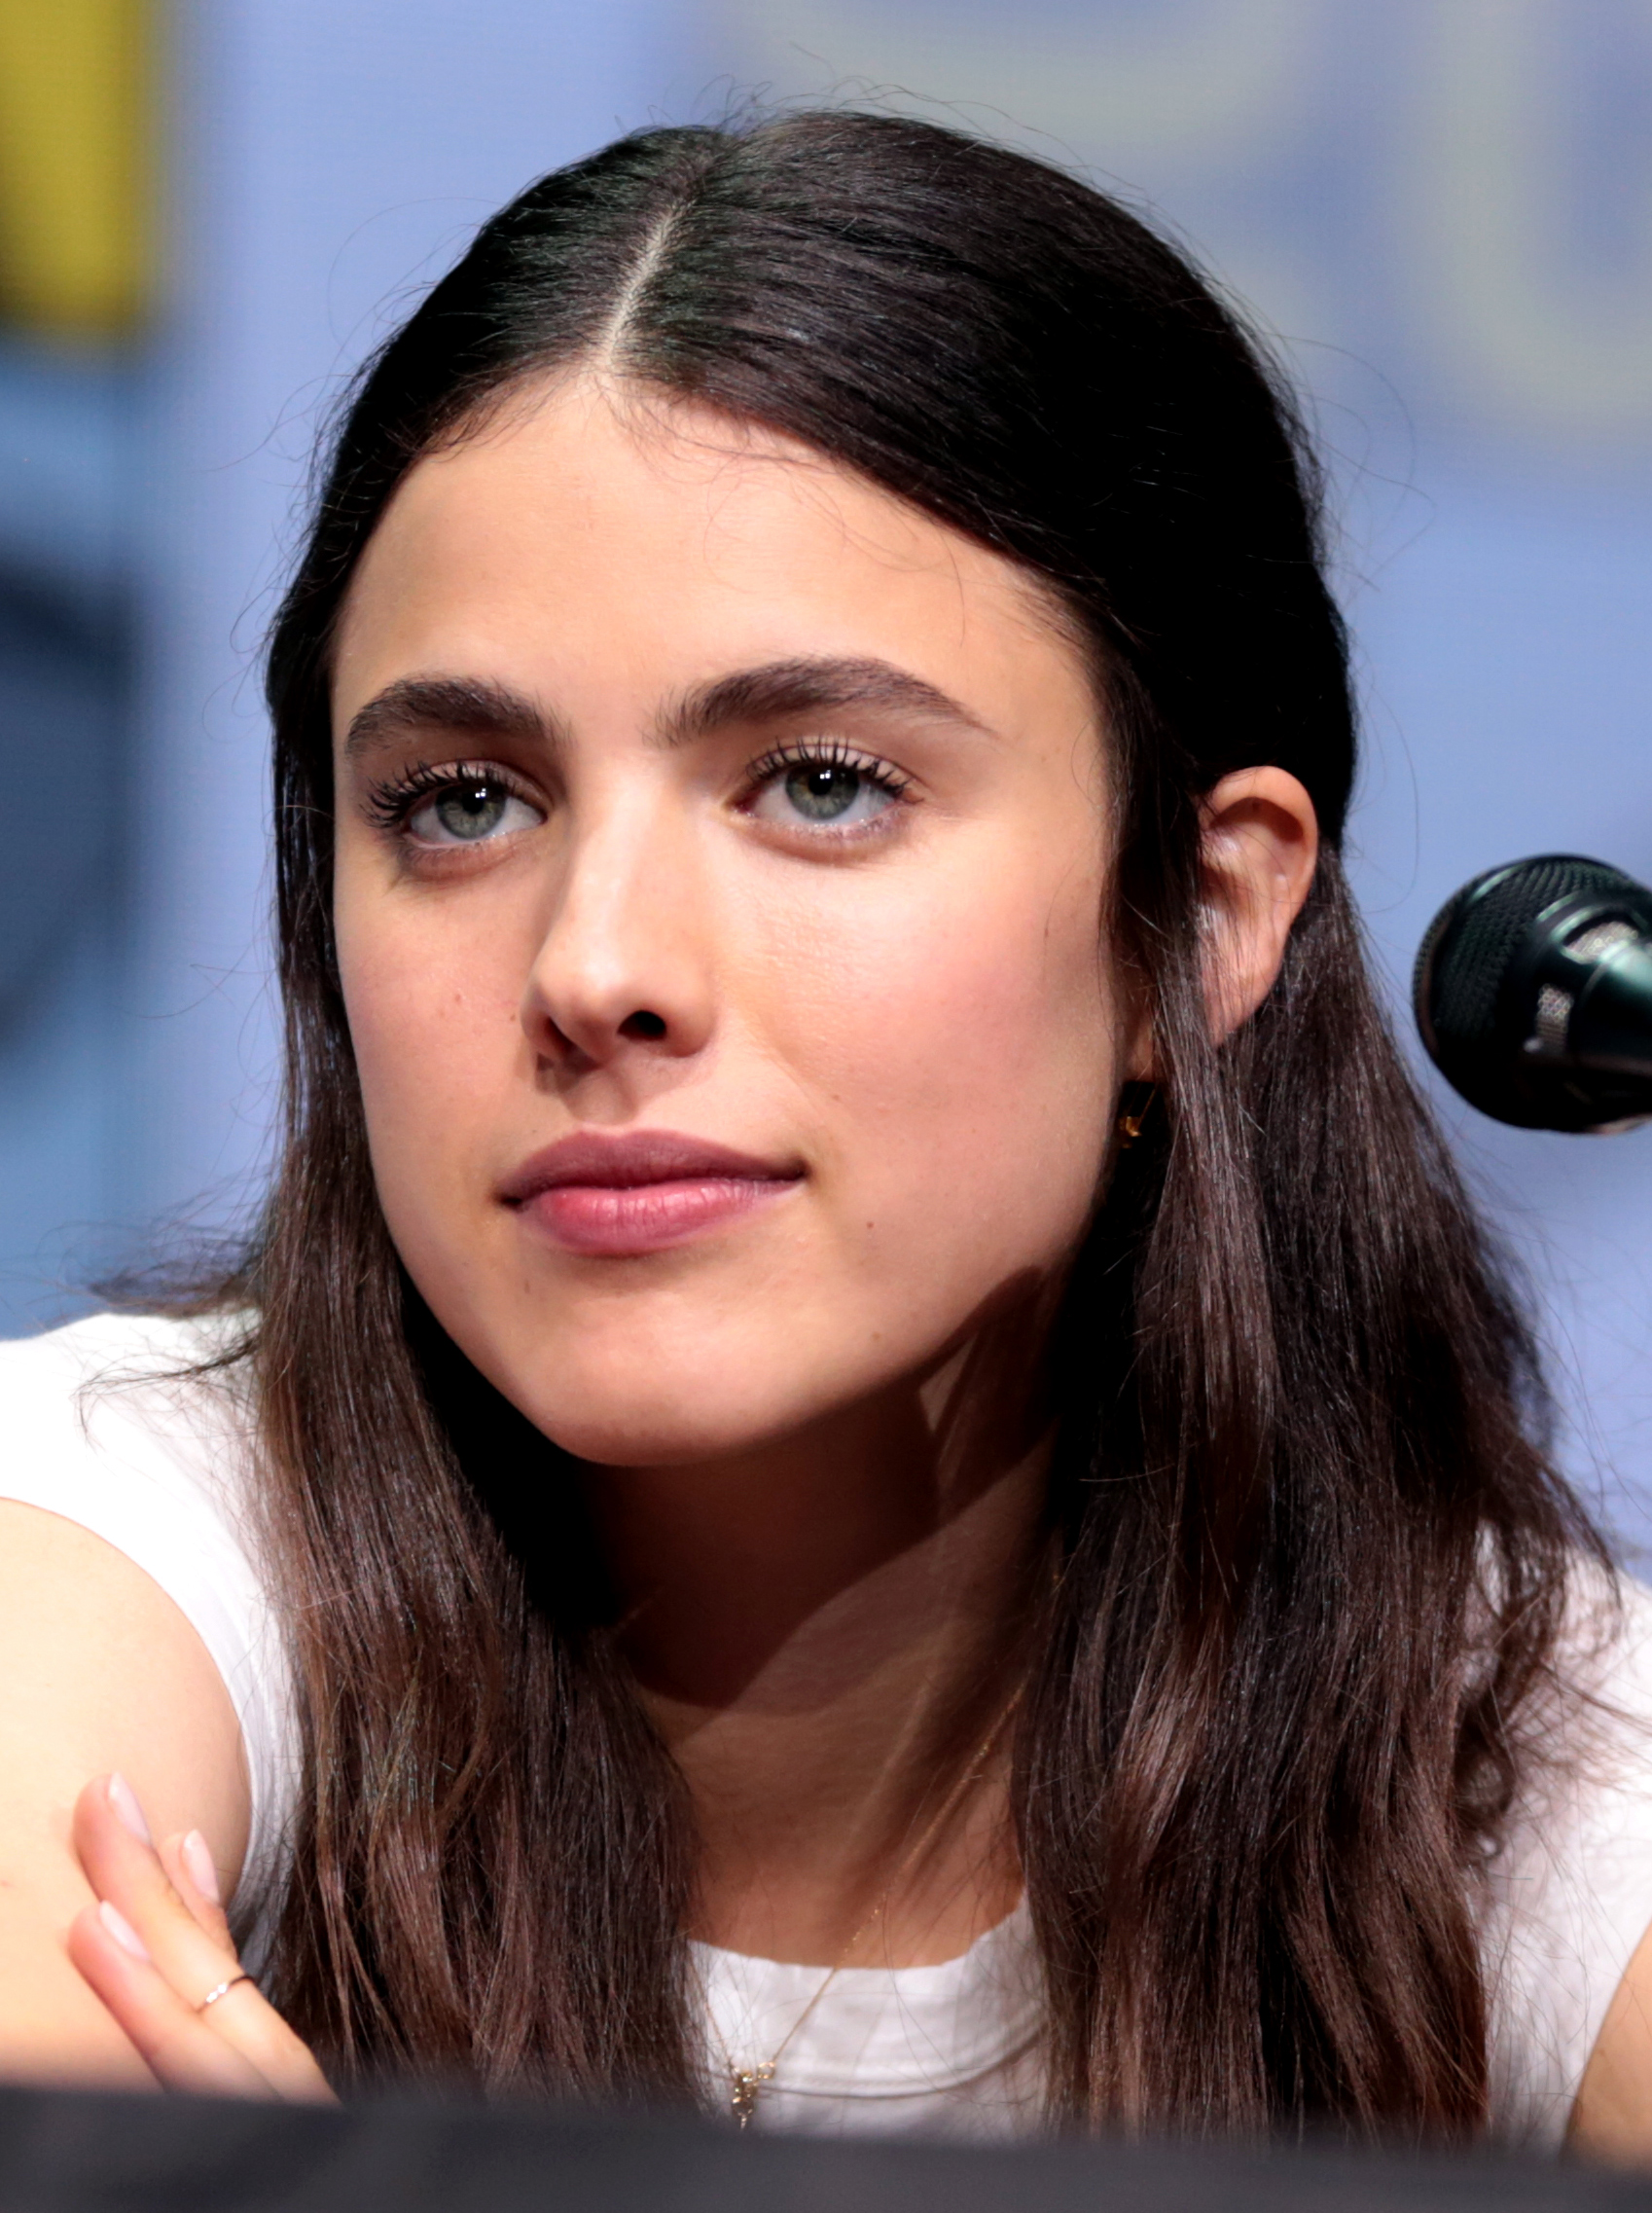 — Qualley Margaret Margaret Qualley Wikipédia Kc5TlFu1J3